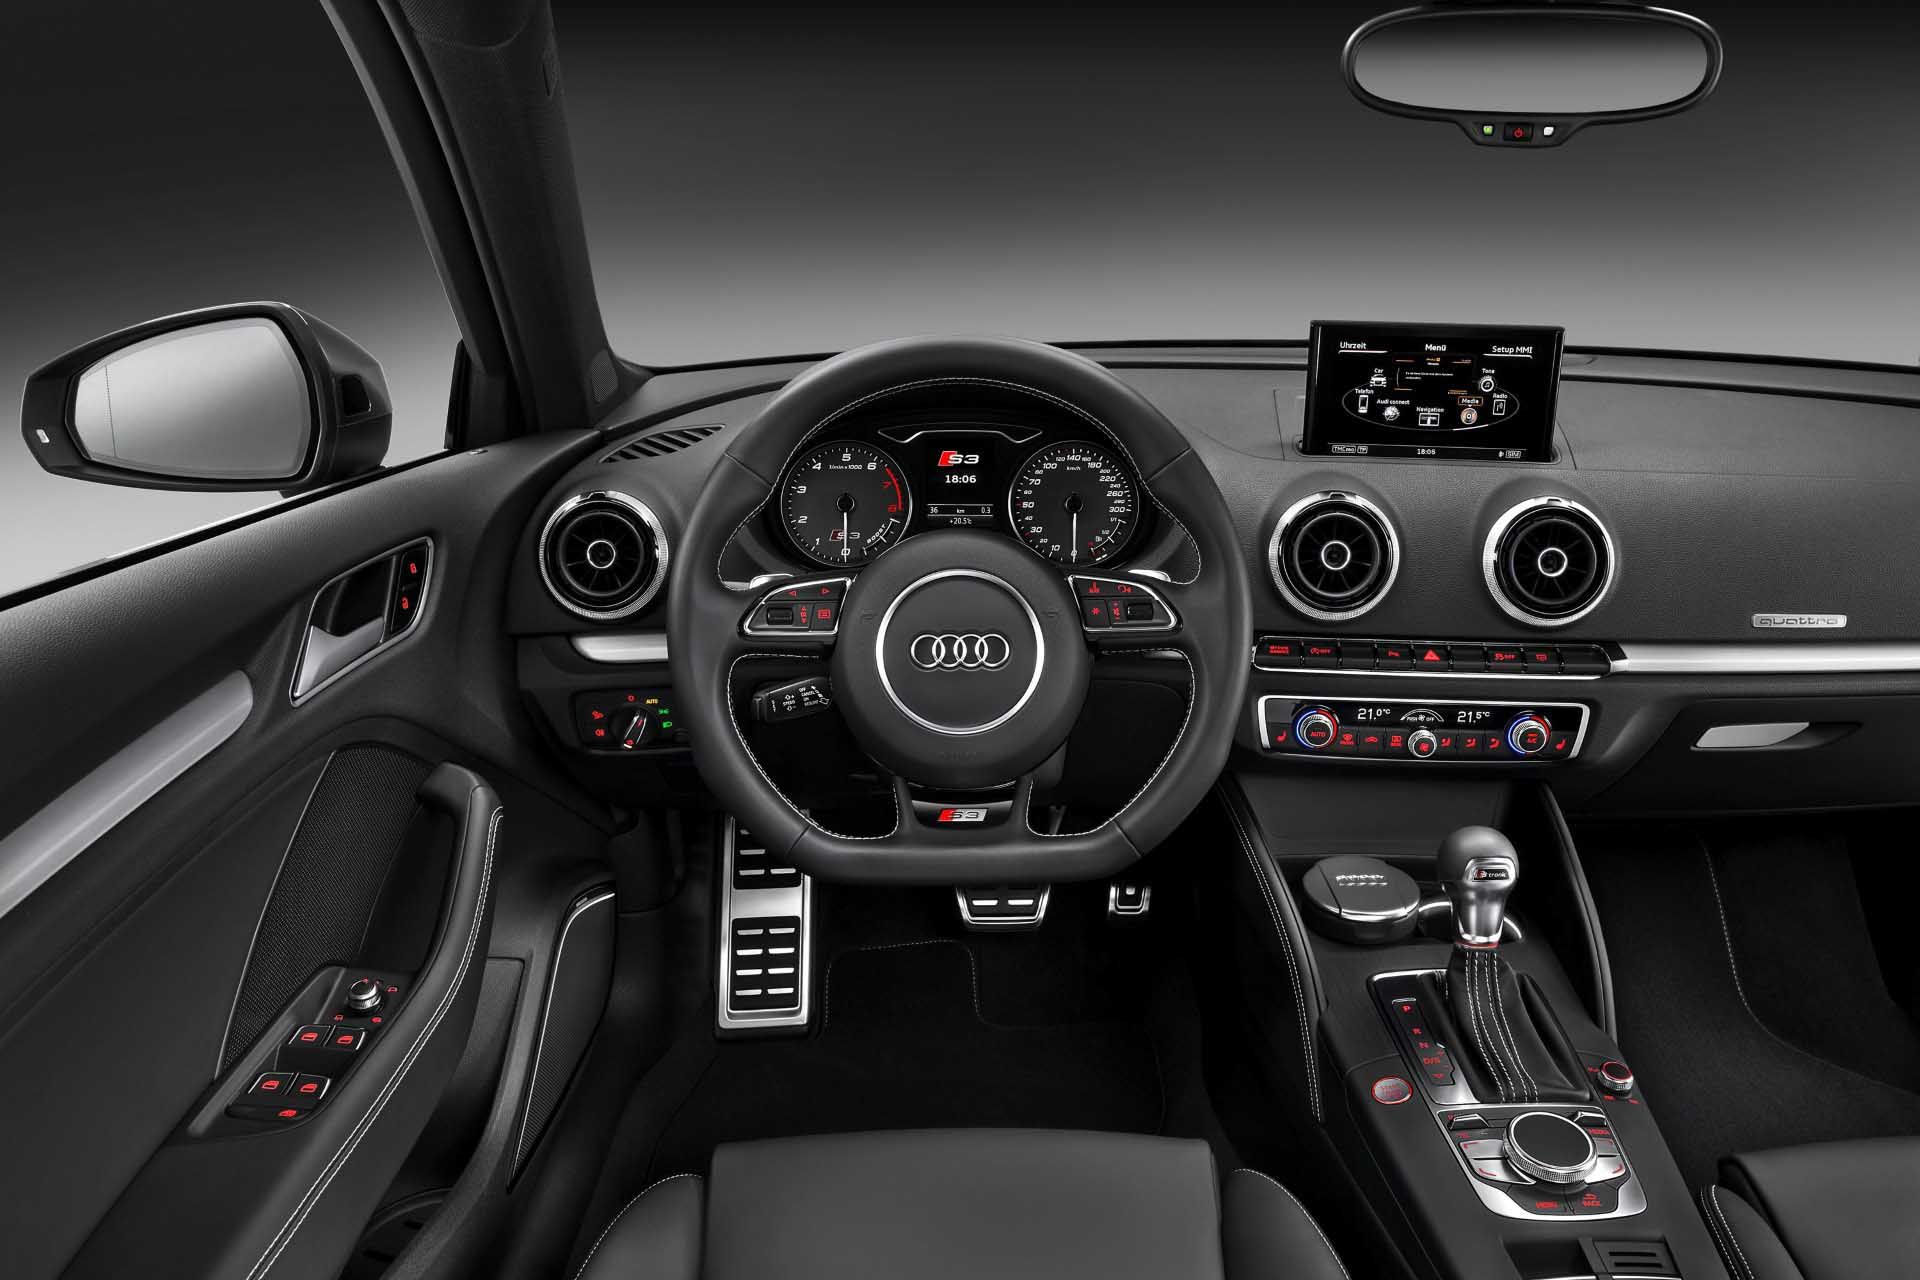 10 Fabulous Audi S3 Sportback Inside View Images Audi Sedan